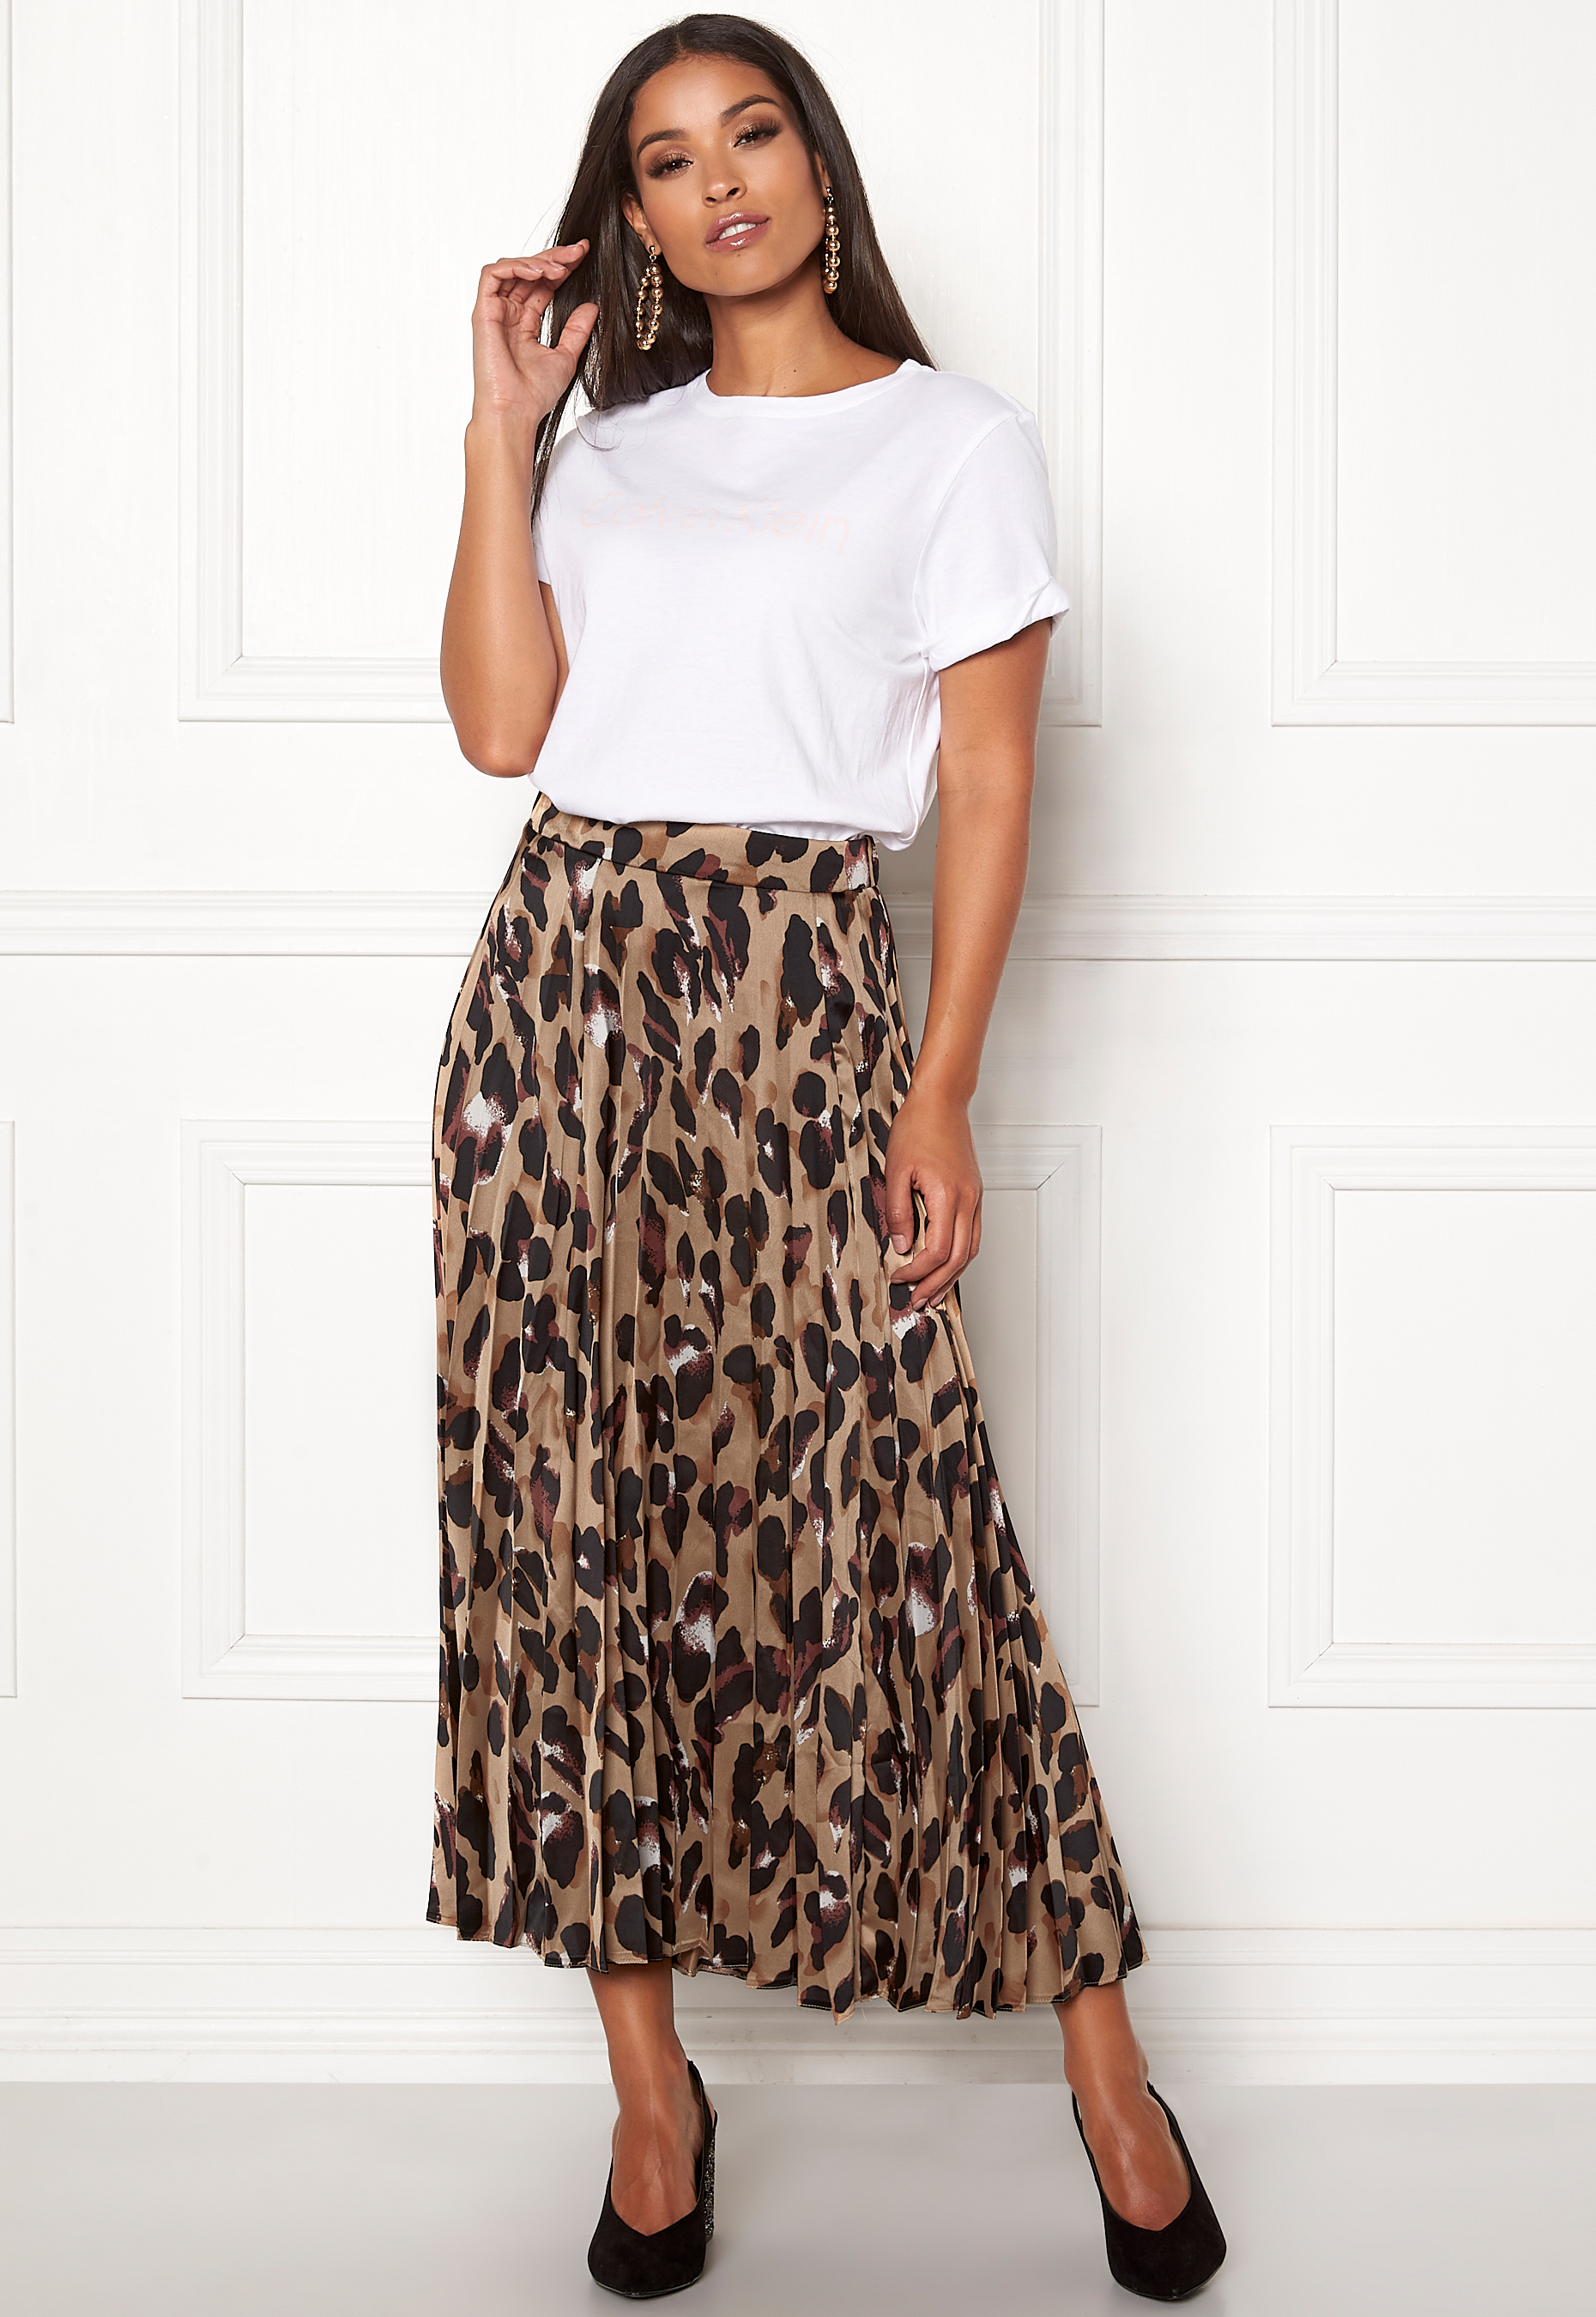 95ef39d8fa26f New Look Animal Pleated Midi Skirt Brown Pattern - Bubbleroom